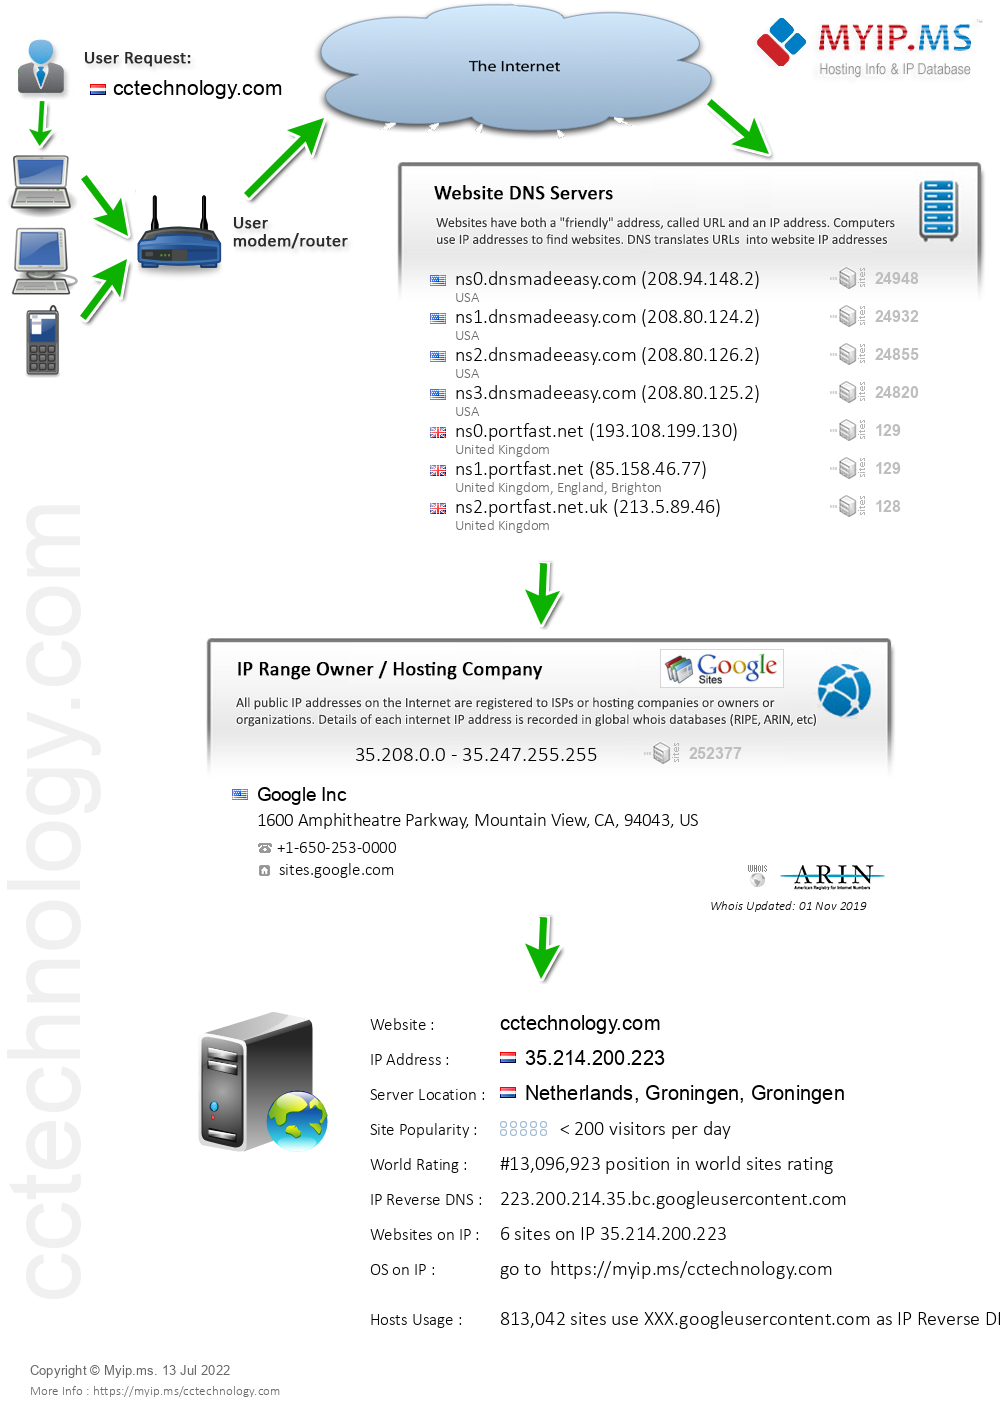 Cctechnology.com - Website Hosting Visual IP Diagram